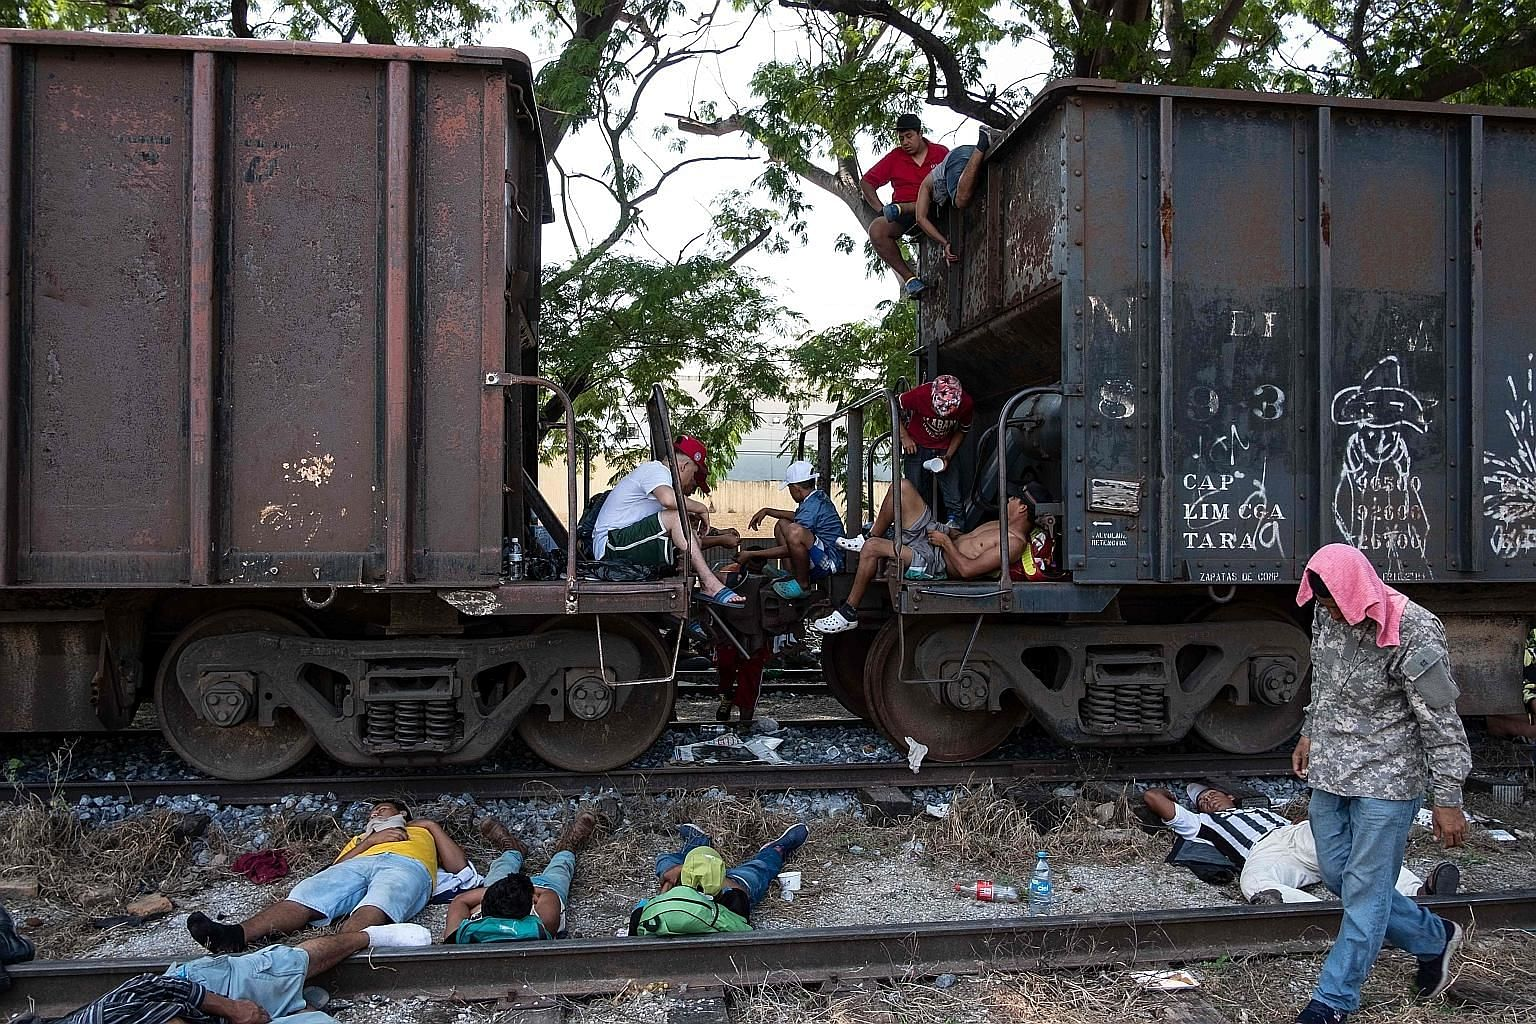 Honduran migrants, part of a caravan heading to the United States, resting in southern Mexico last Friday. One video showing cash being handed out to the migrants had earlier spread on social media. It was later found to have been filmed in Guatemala